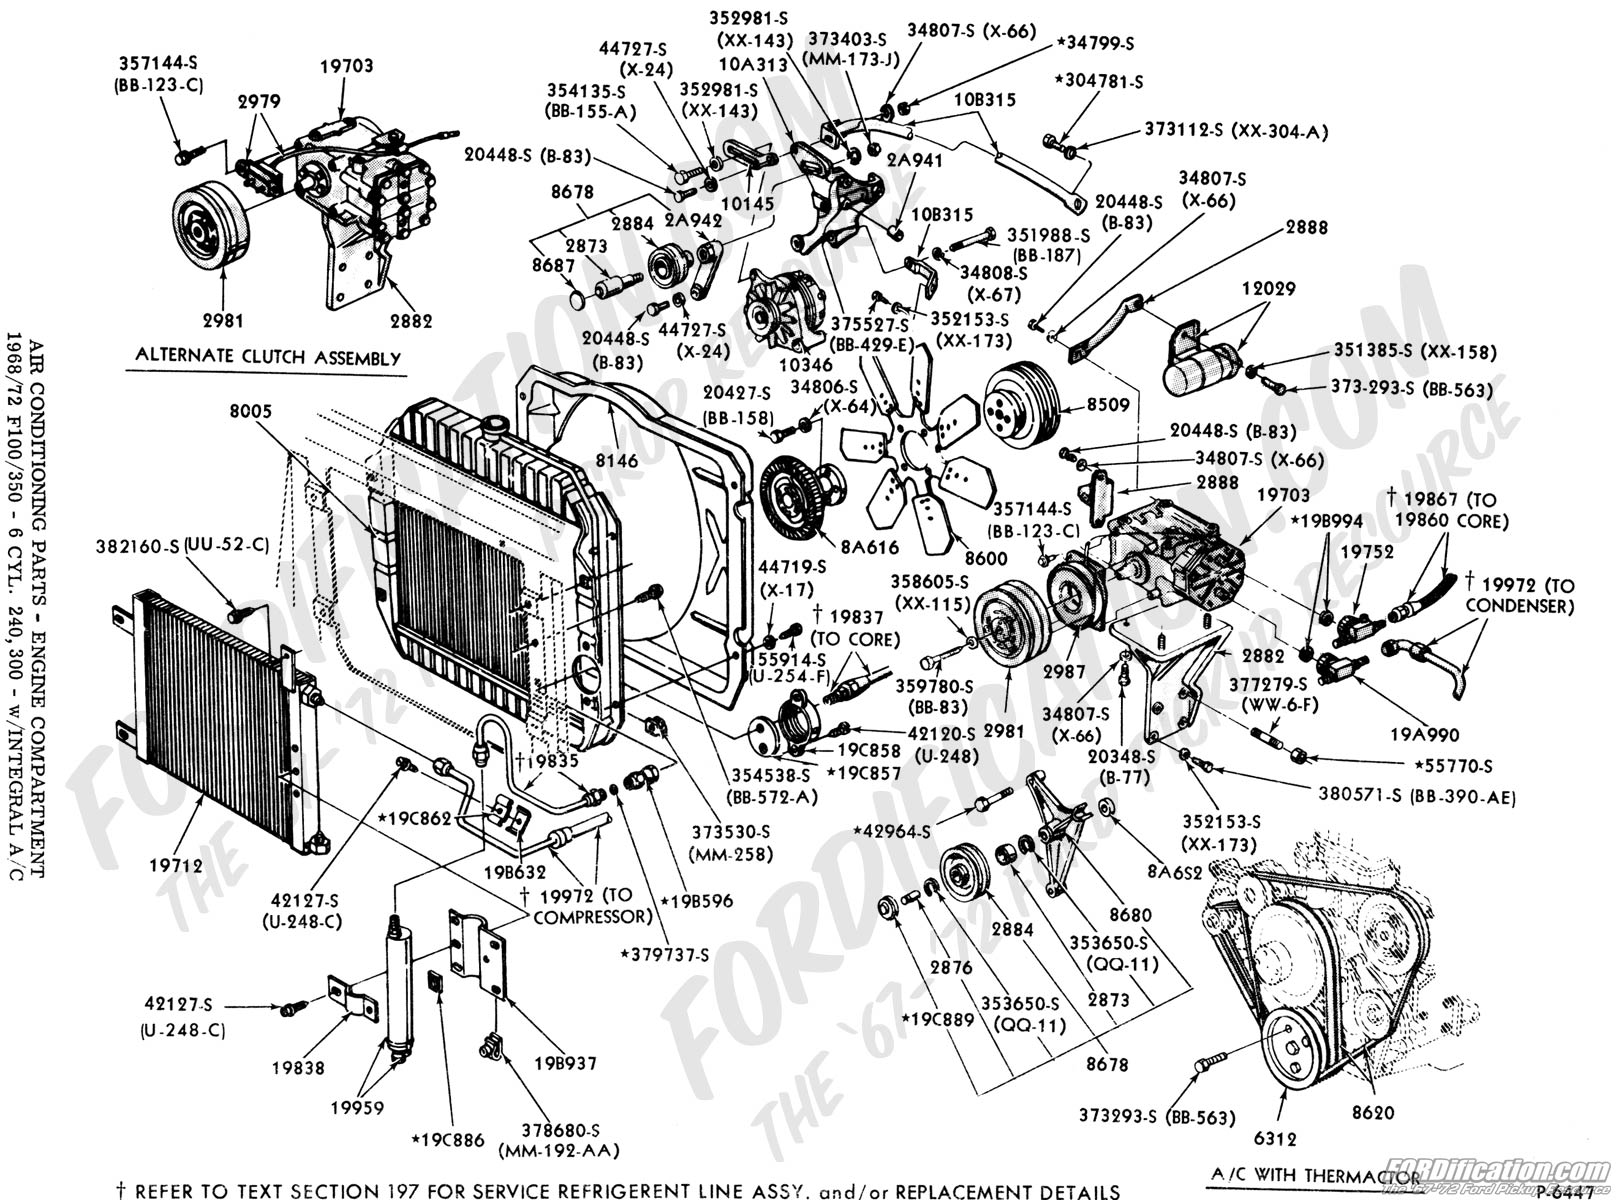 77 ford f 150 ignition wiring 1977 ford f150 wiring diagram 1977 image wiring ignition wiring diagram for 1977 f150 ignition discover